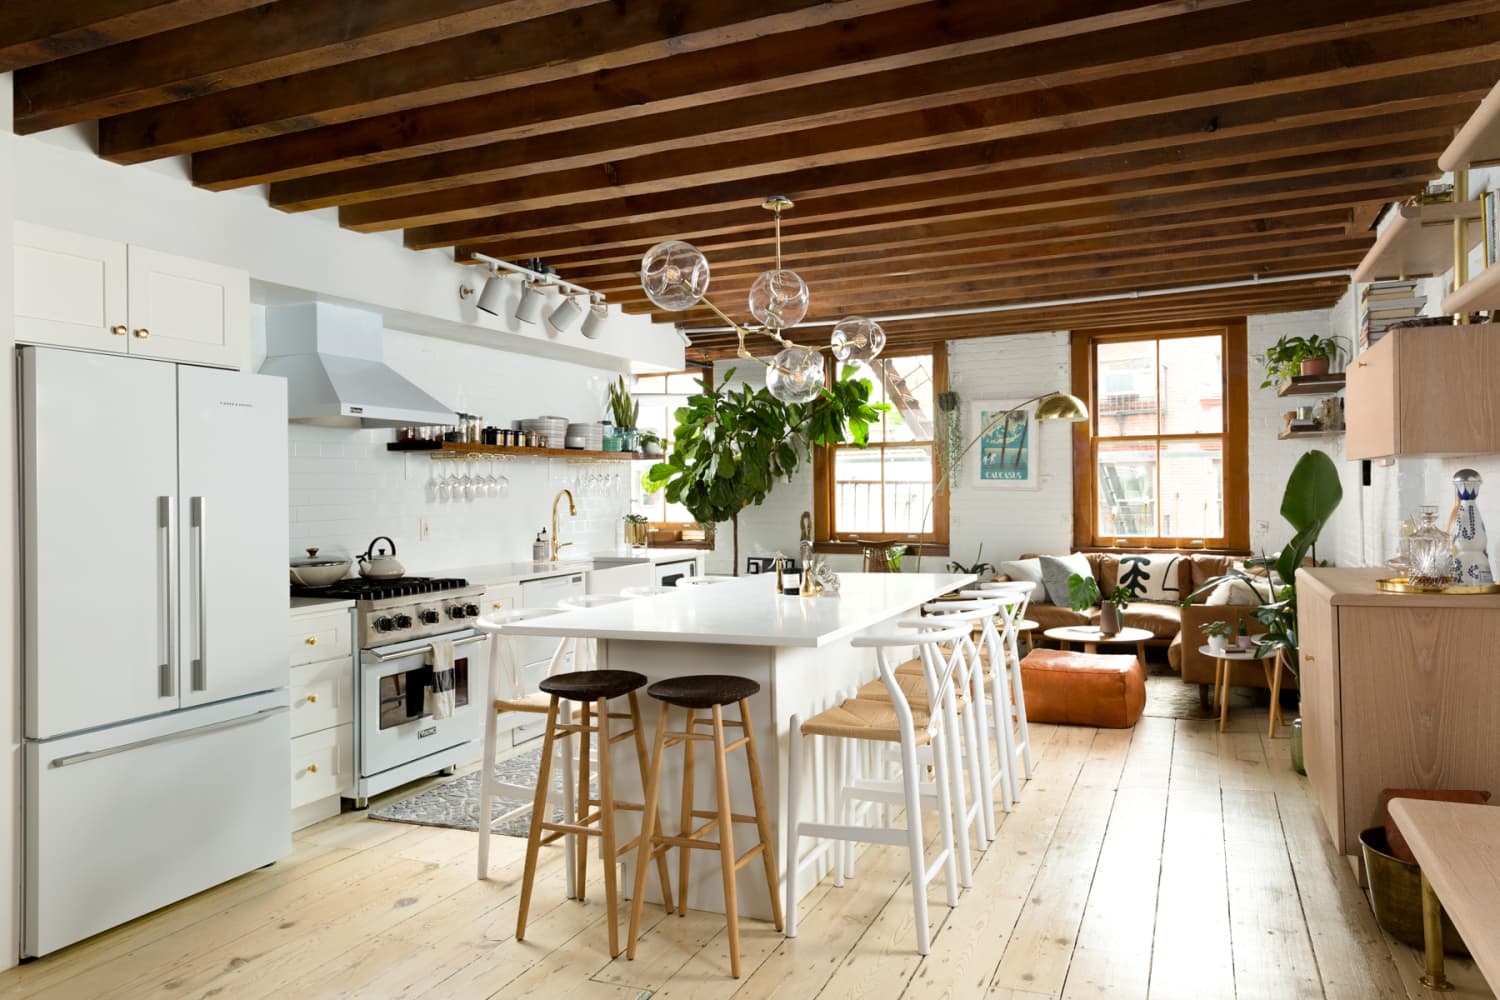 7 Things Home Experts Say Are Always Worth the Extra Money